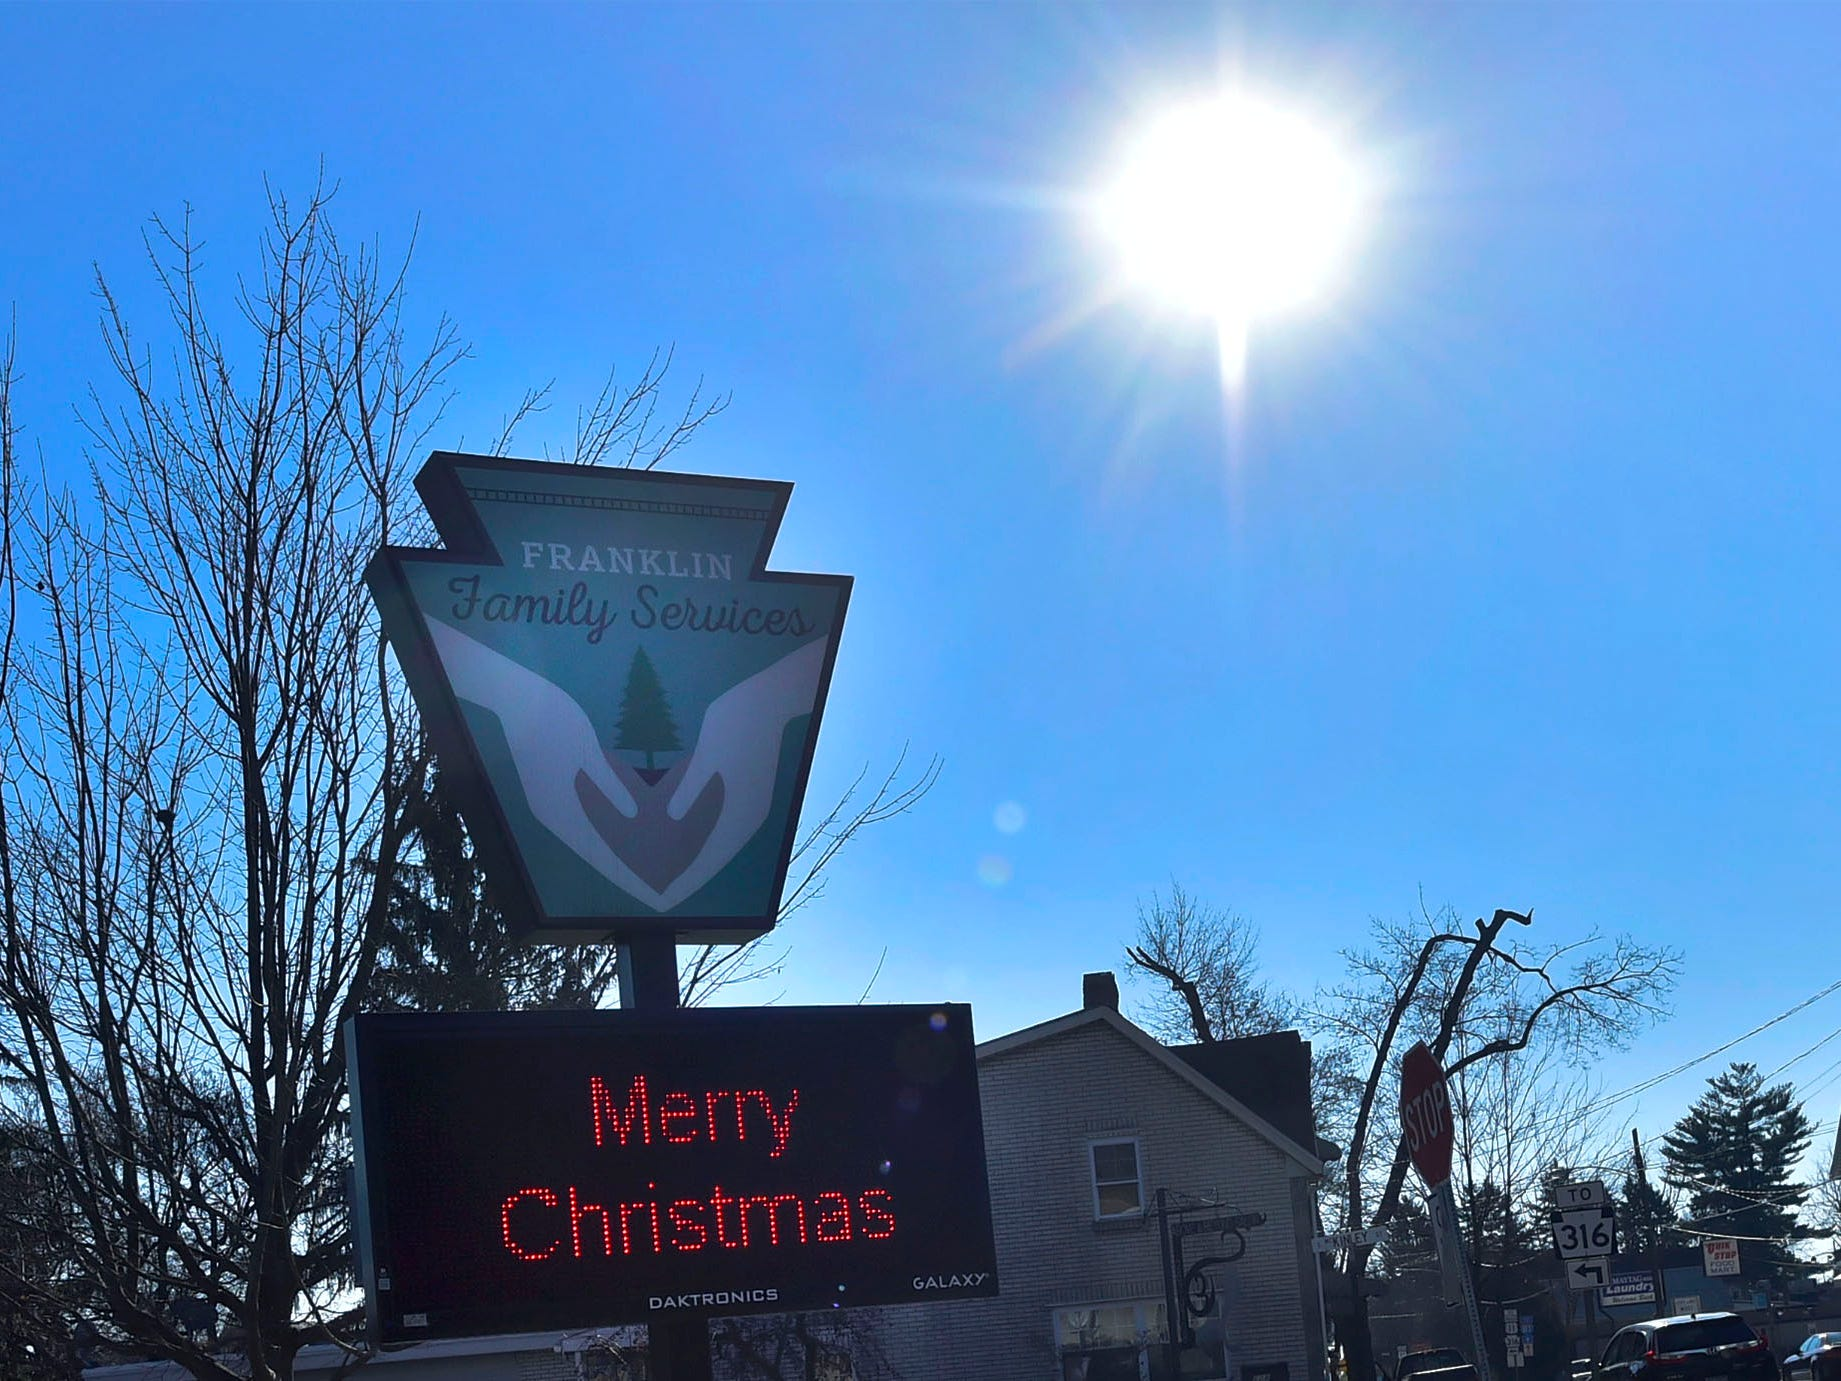 A Christmas message a displayed on an electronic sign Tuesday, December 11, 2018 at Franklin Family Services, McKinley Street, Chambersburg.